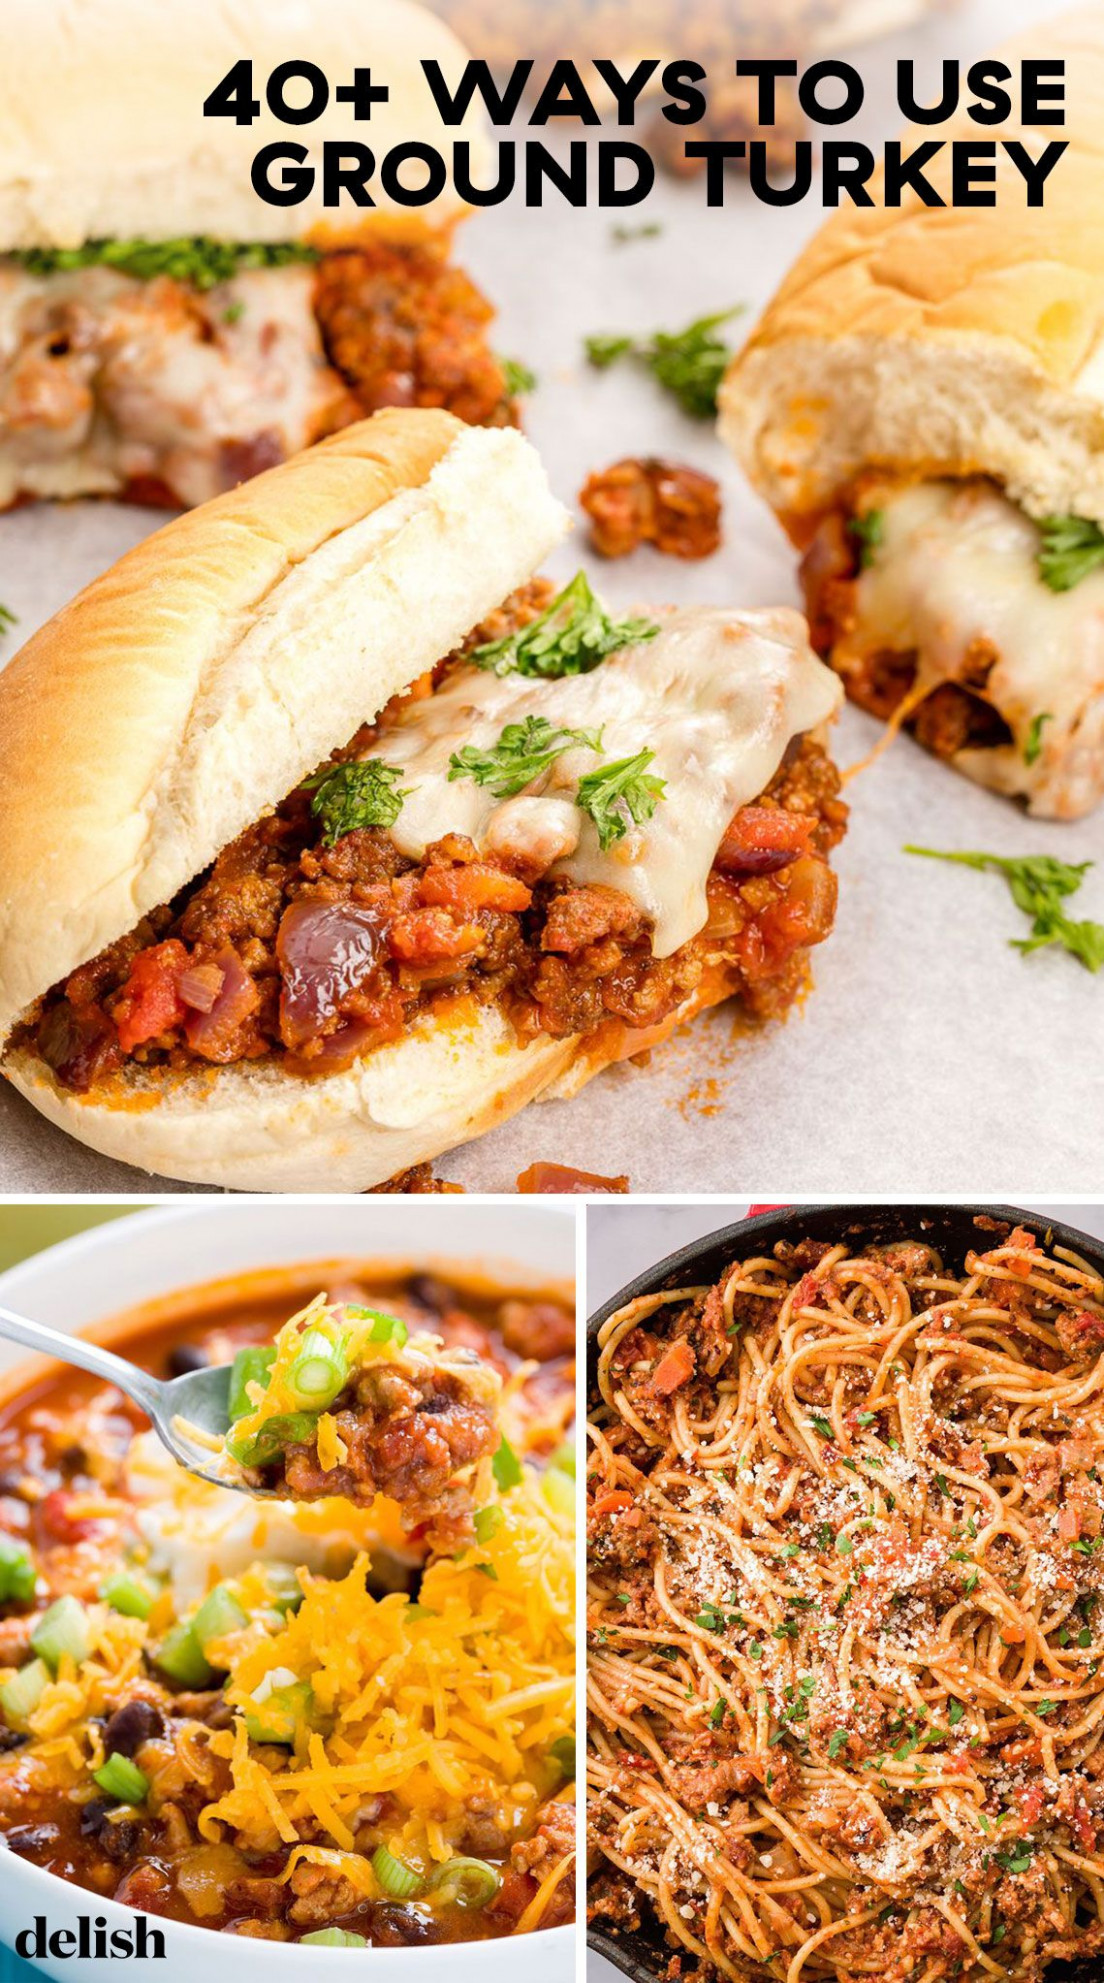 13+ Ground Turkey Recipes - Healthy Meals with Ground Turkey - dinner recipes ground turkey